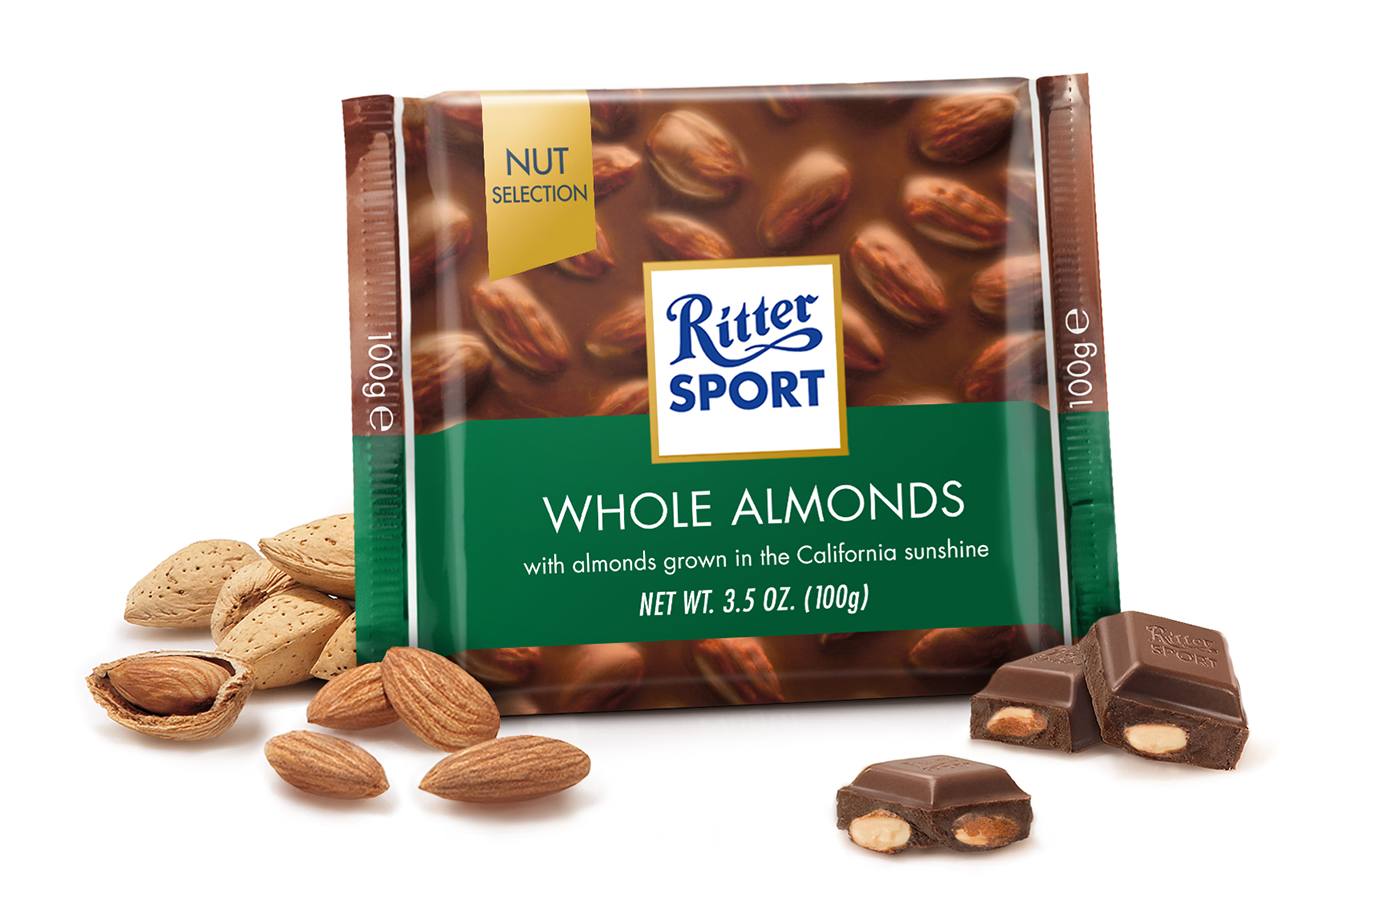 Ritter Whole Almond Chocolate 100g